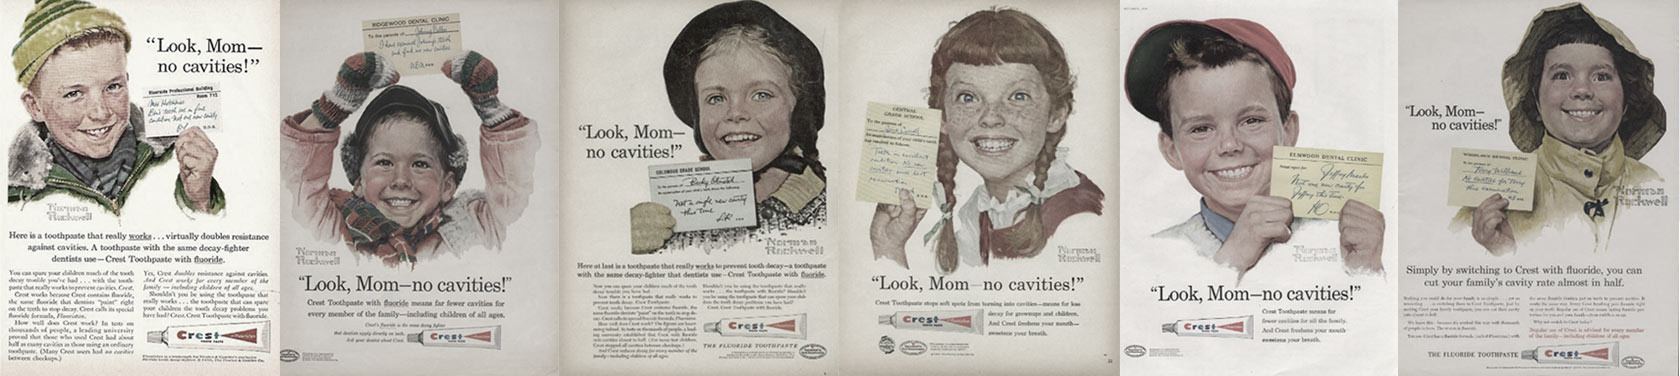 Look, Mom—no cavities. Crest advertising campaign circa 1985, Procter & Gamble.